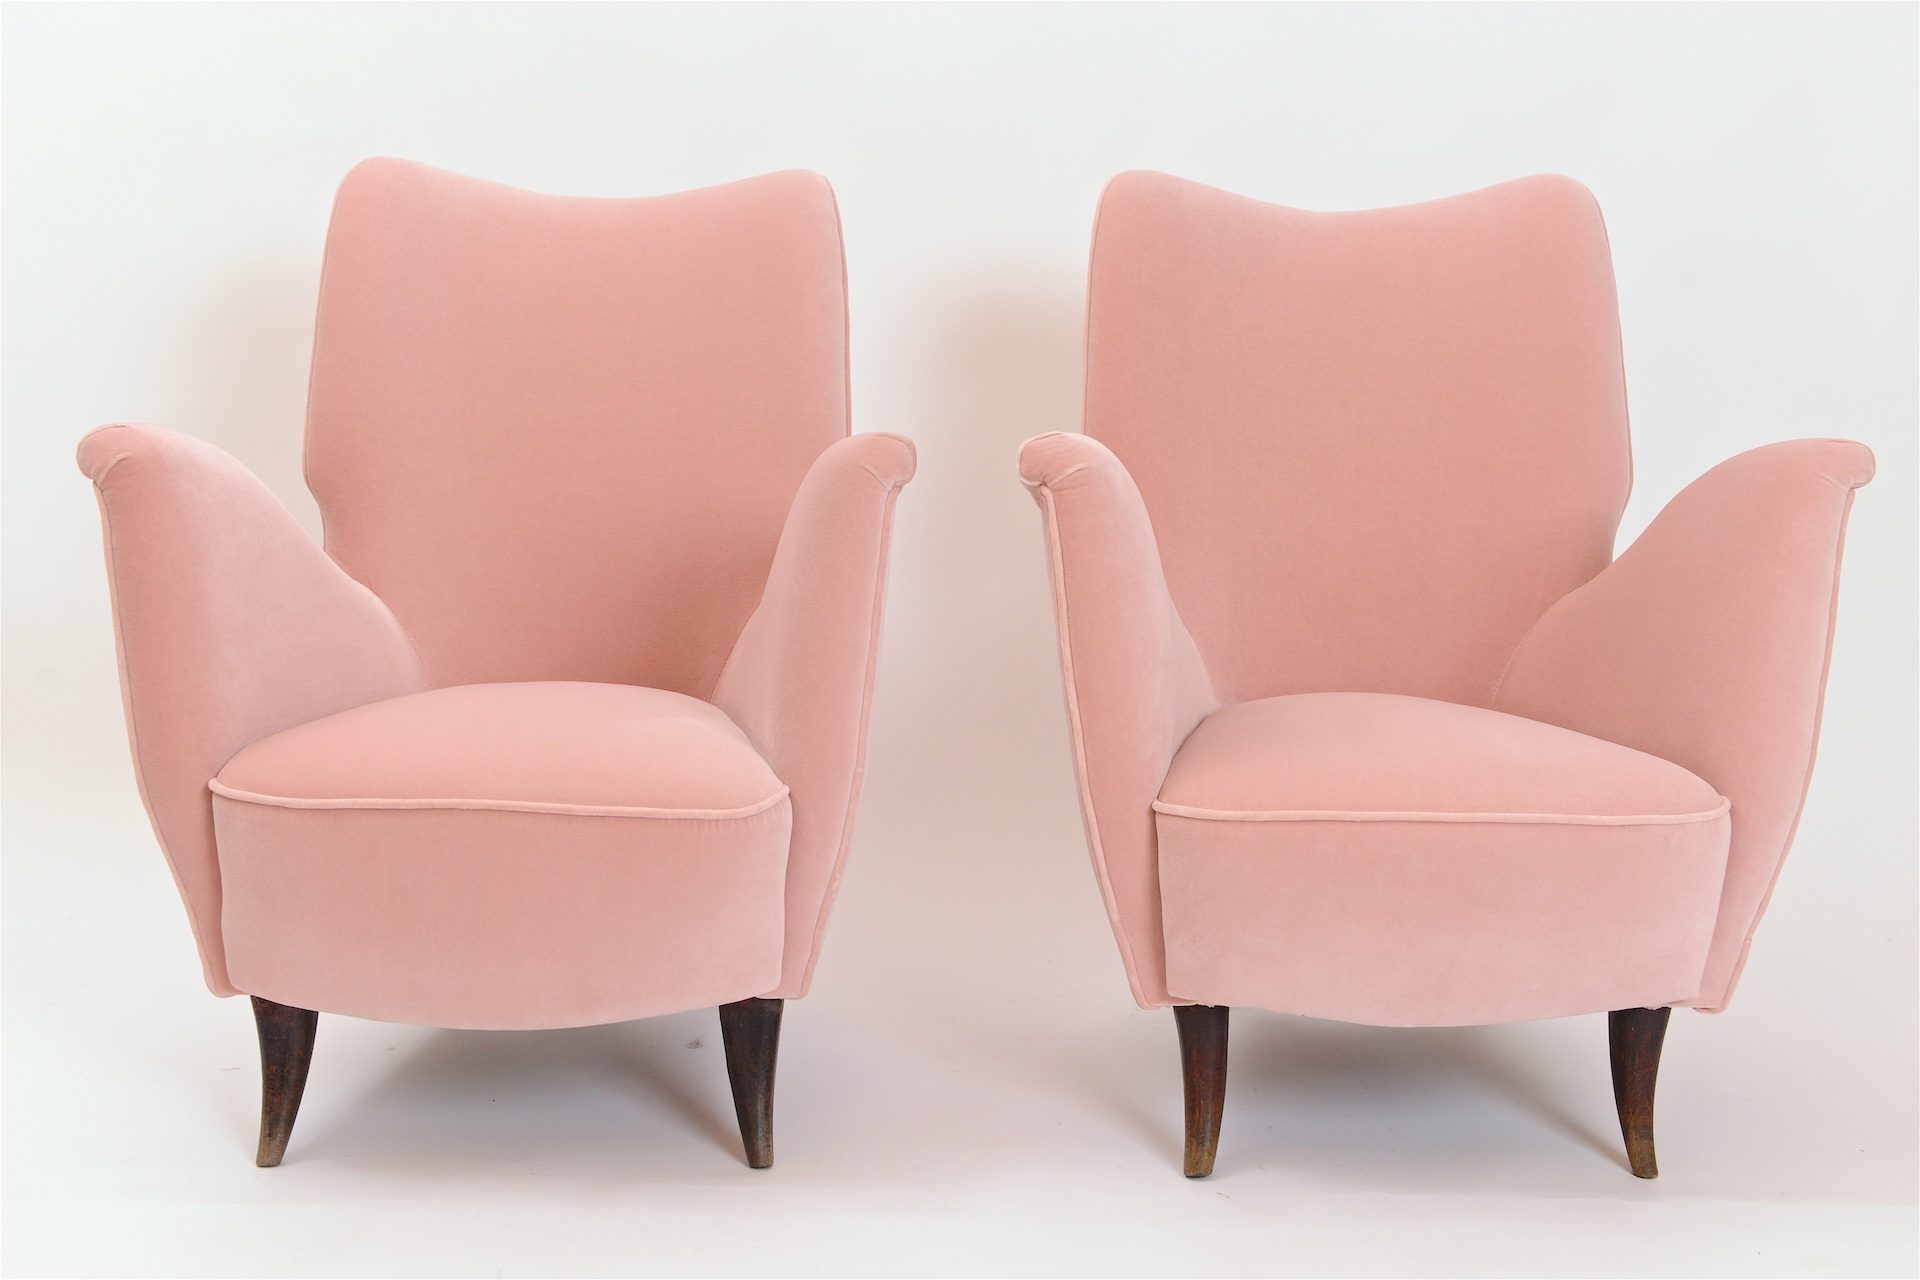 Pair of pink velvet upholstered armchairs